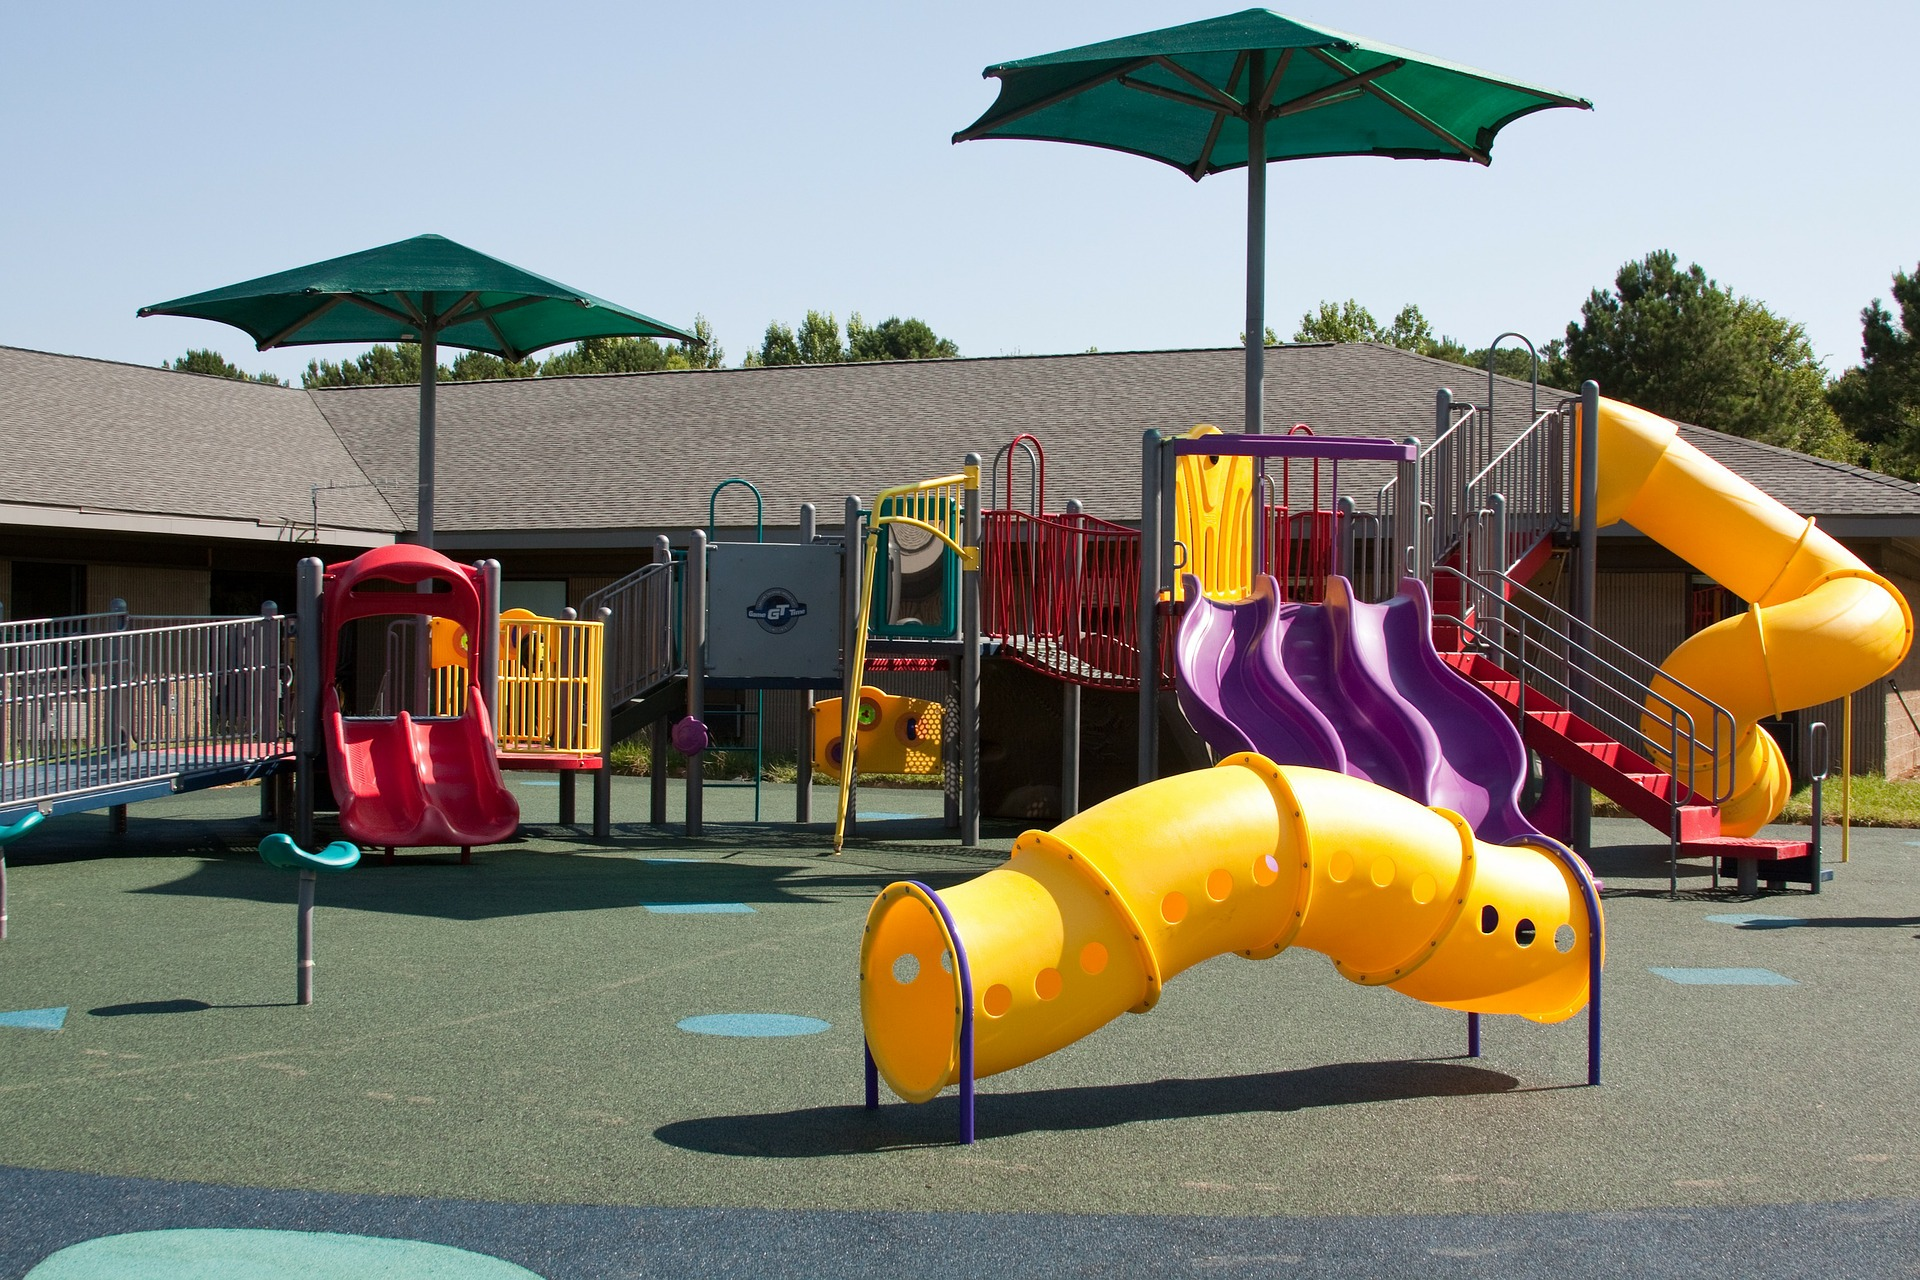 A playground with poured rubber surfacing